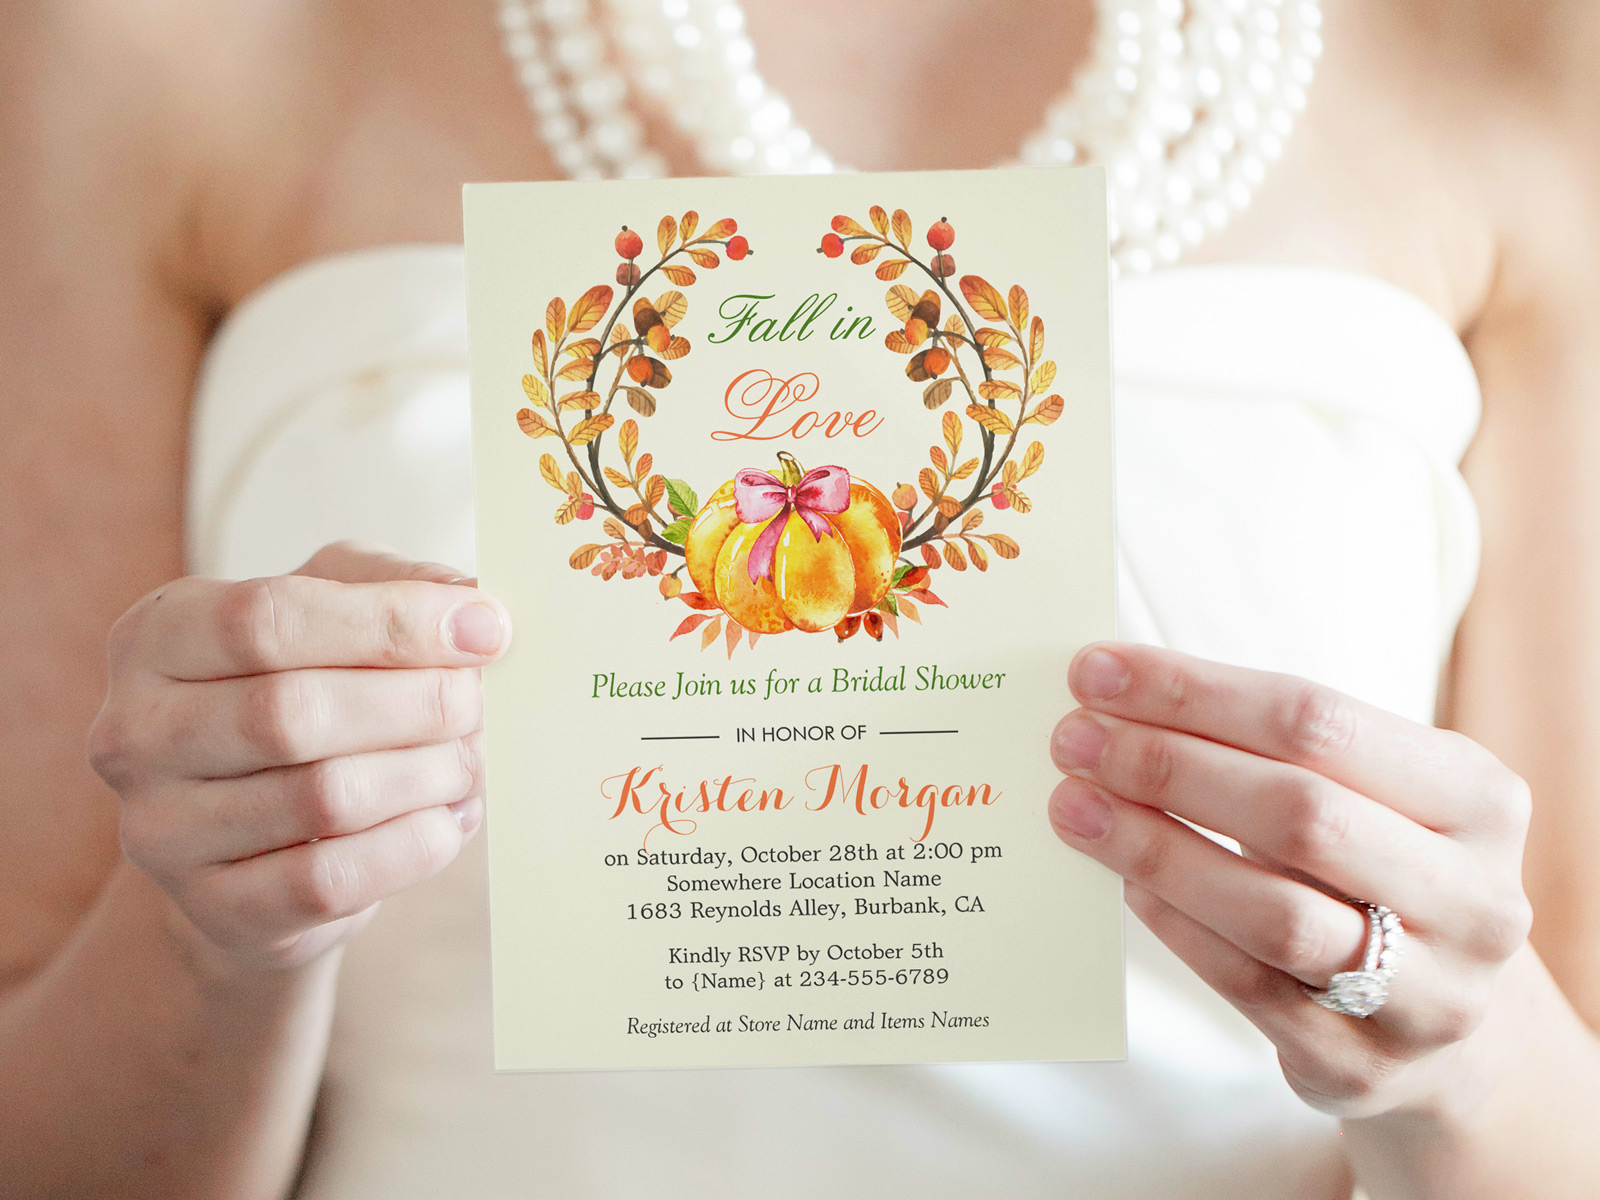 30 fall in love bridal shower invitations mimoprints 30 fall in love bridal shower invitations filmwisefo Gallery